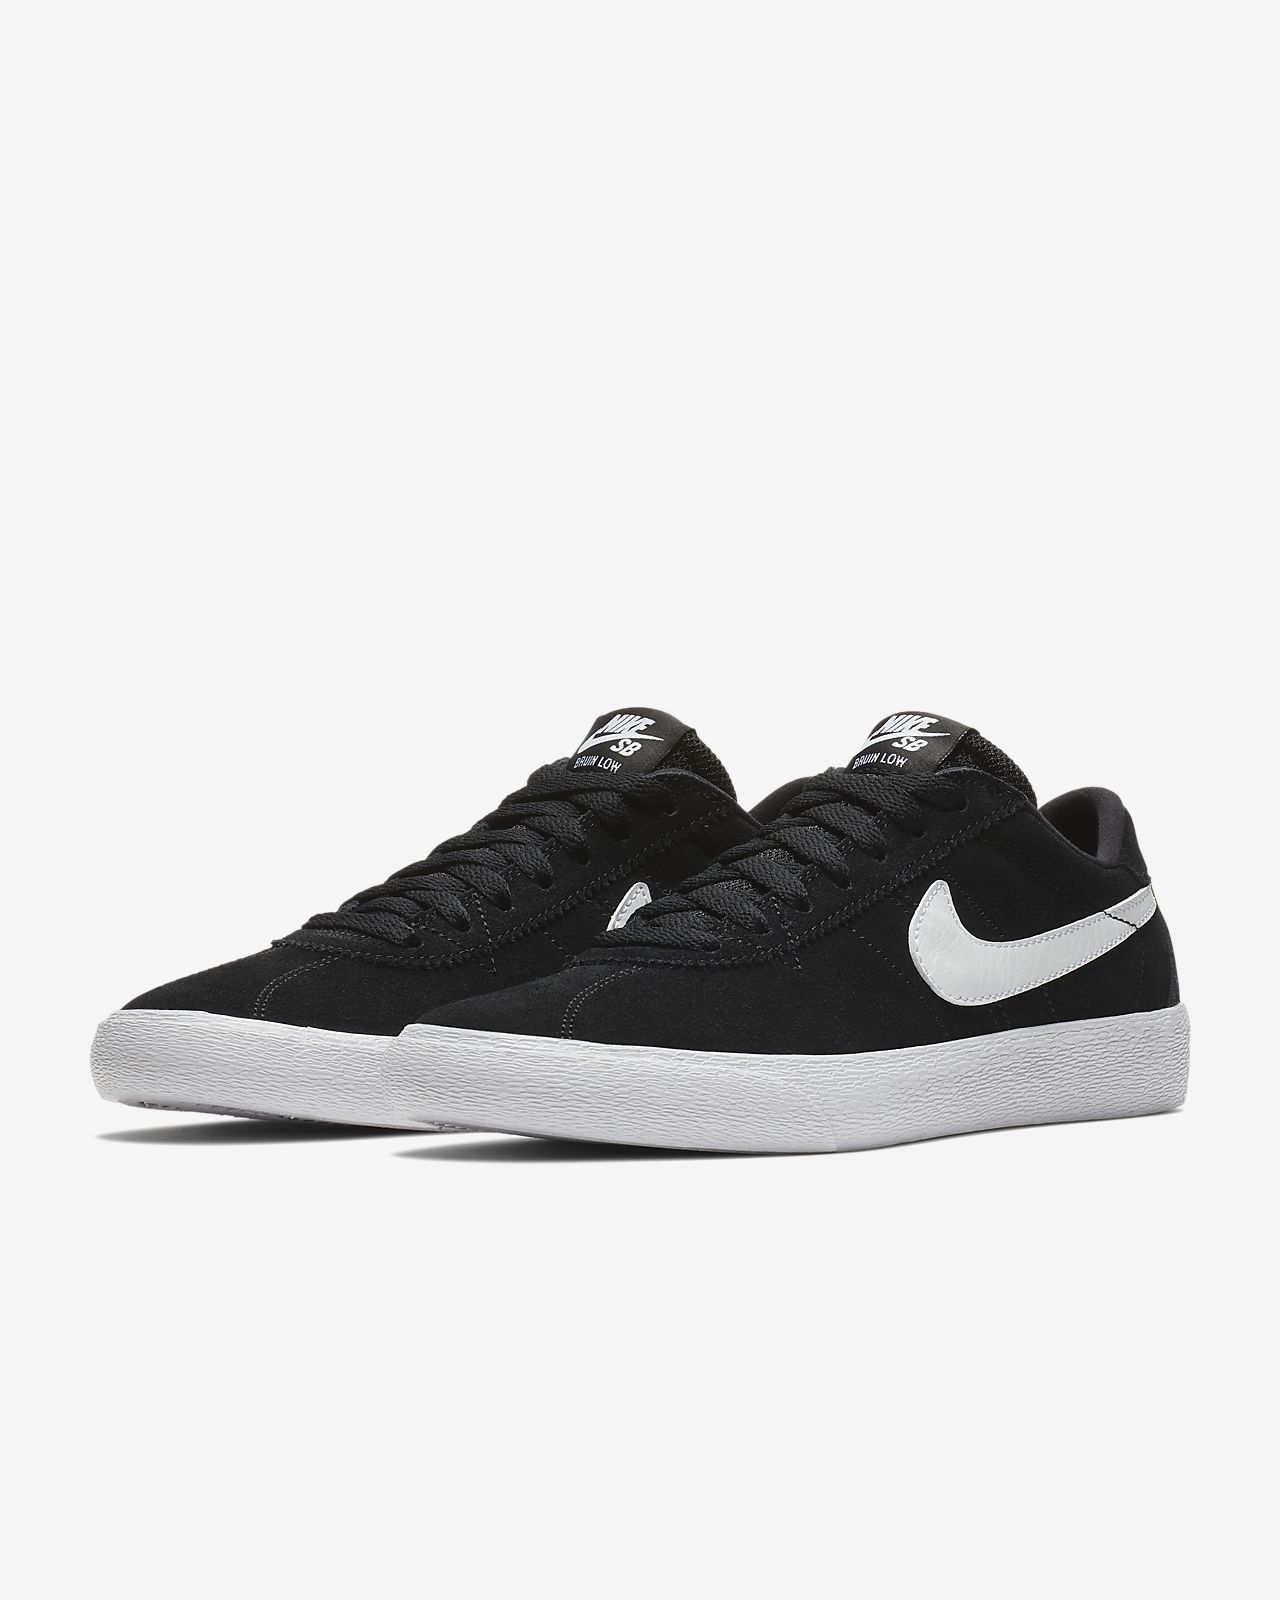 quality design 27abe 81615 ... Nike SB Zoom Bruin Low Damen-Skateboardschuh